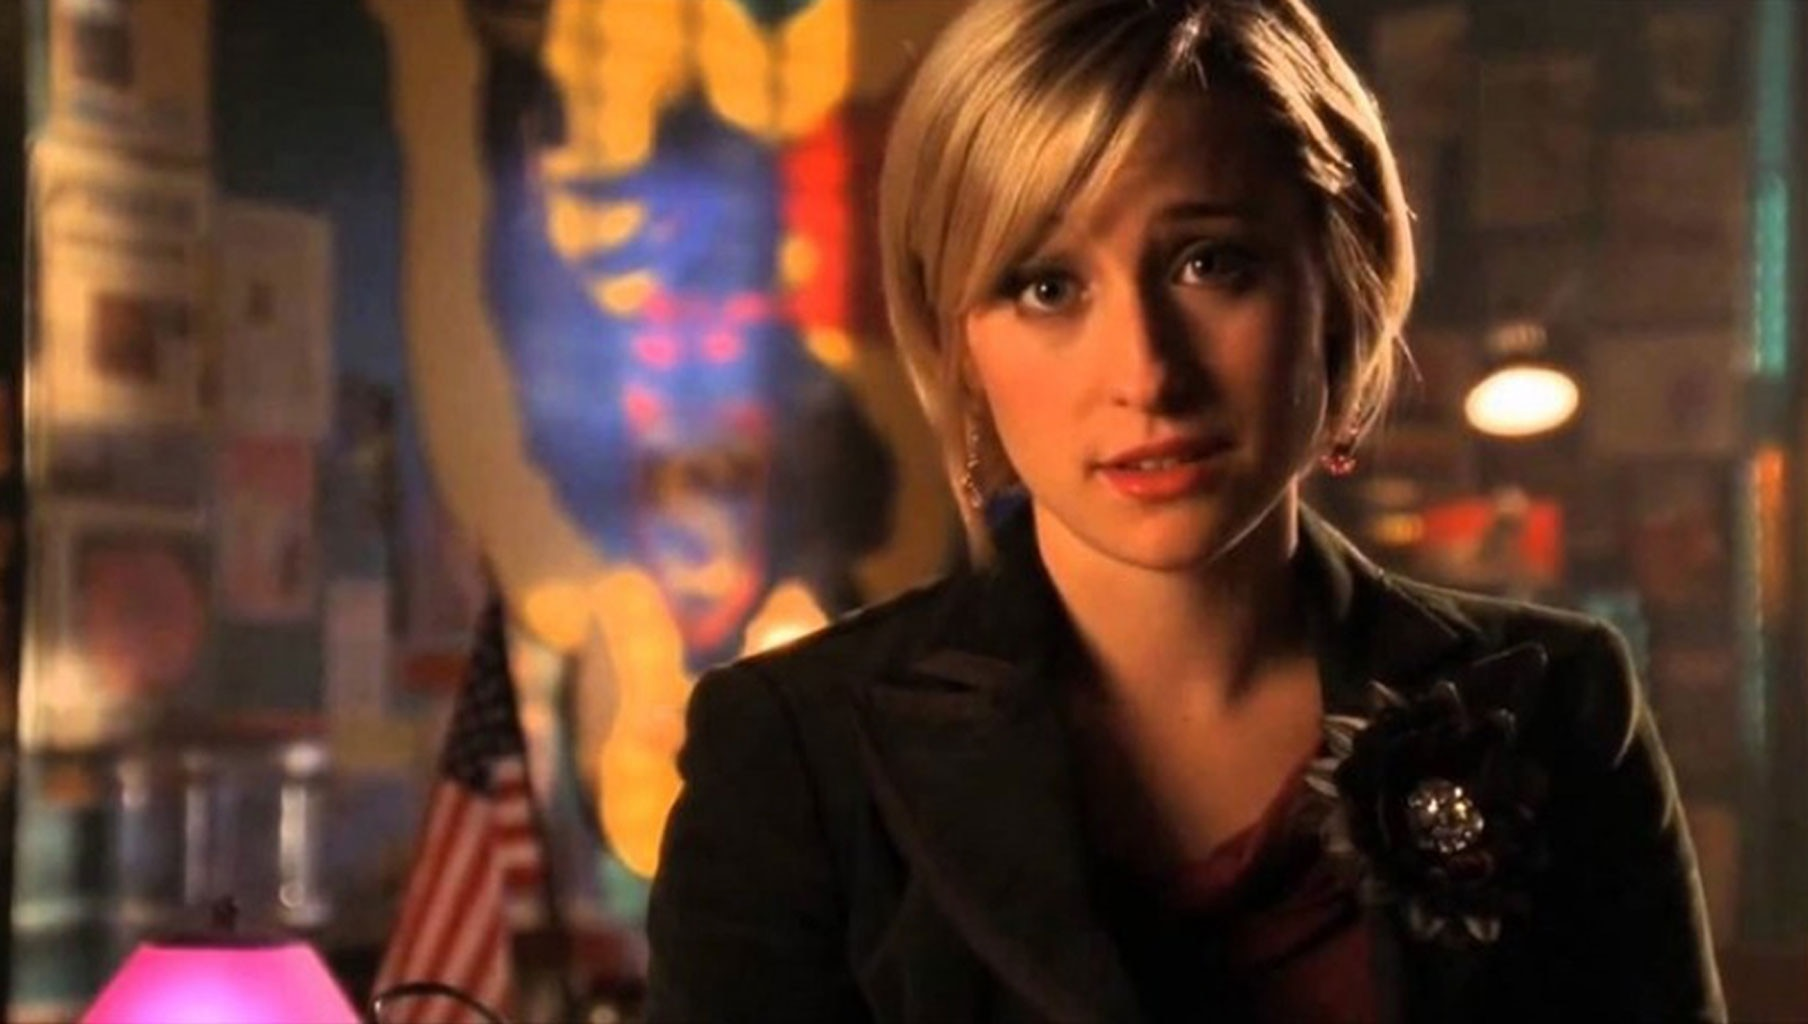 Hot Allison Mack nudes (75 foto and video), Topless, Fappening, Feet, braless 2020